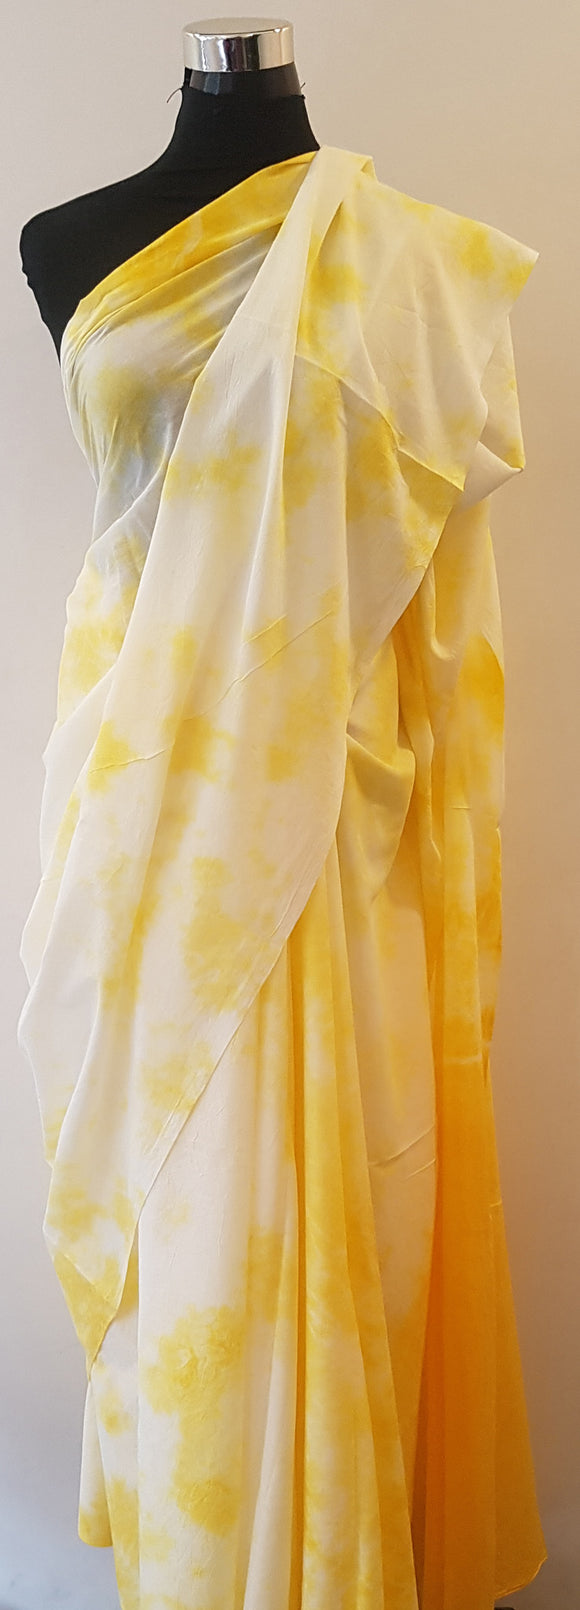 Shibori Yellow Saree (C)